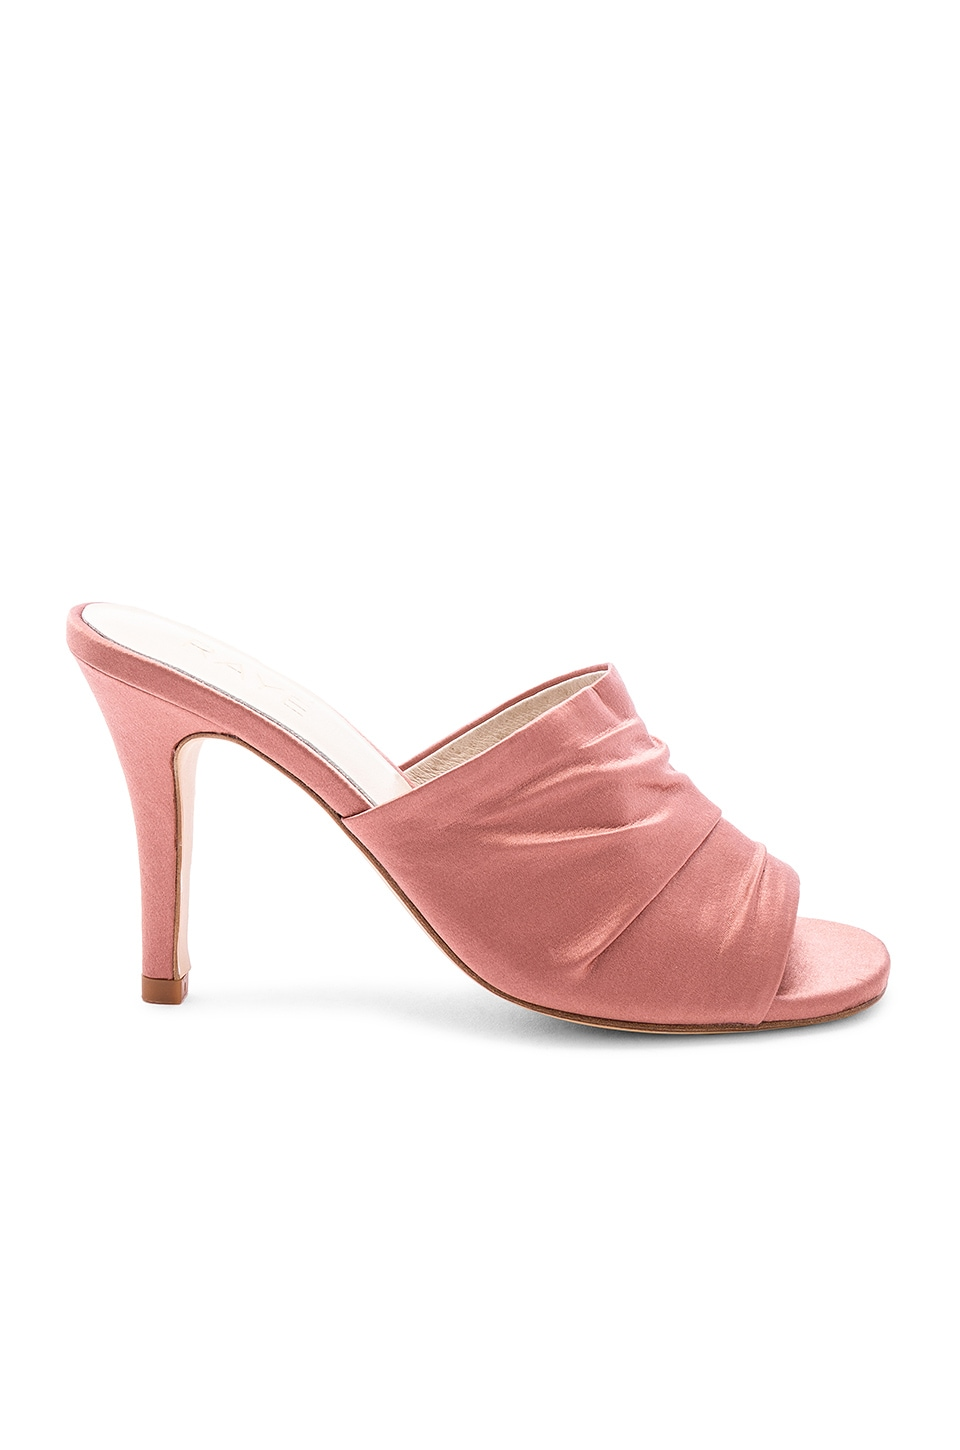 13d2bf97a9be RAYE Holt Heel in Mauve Pink